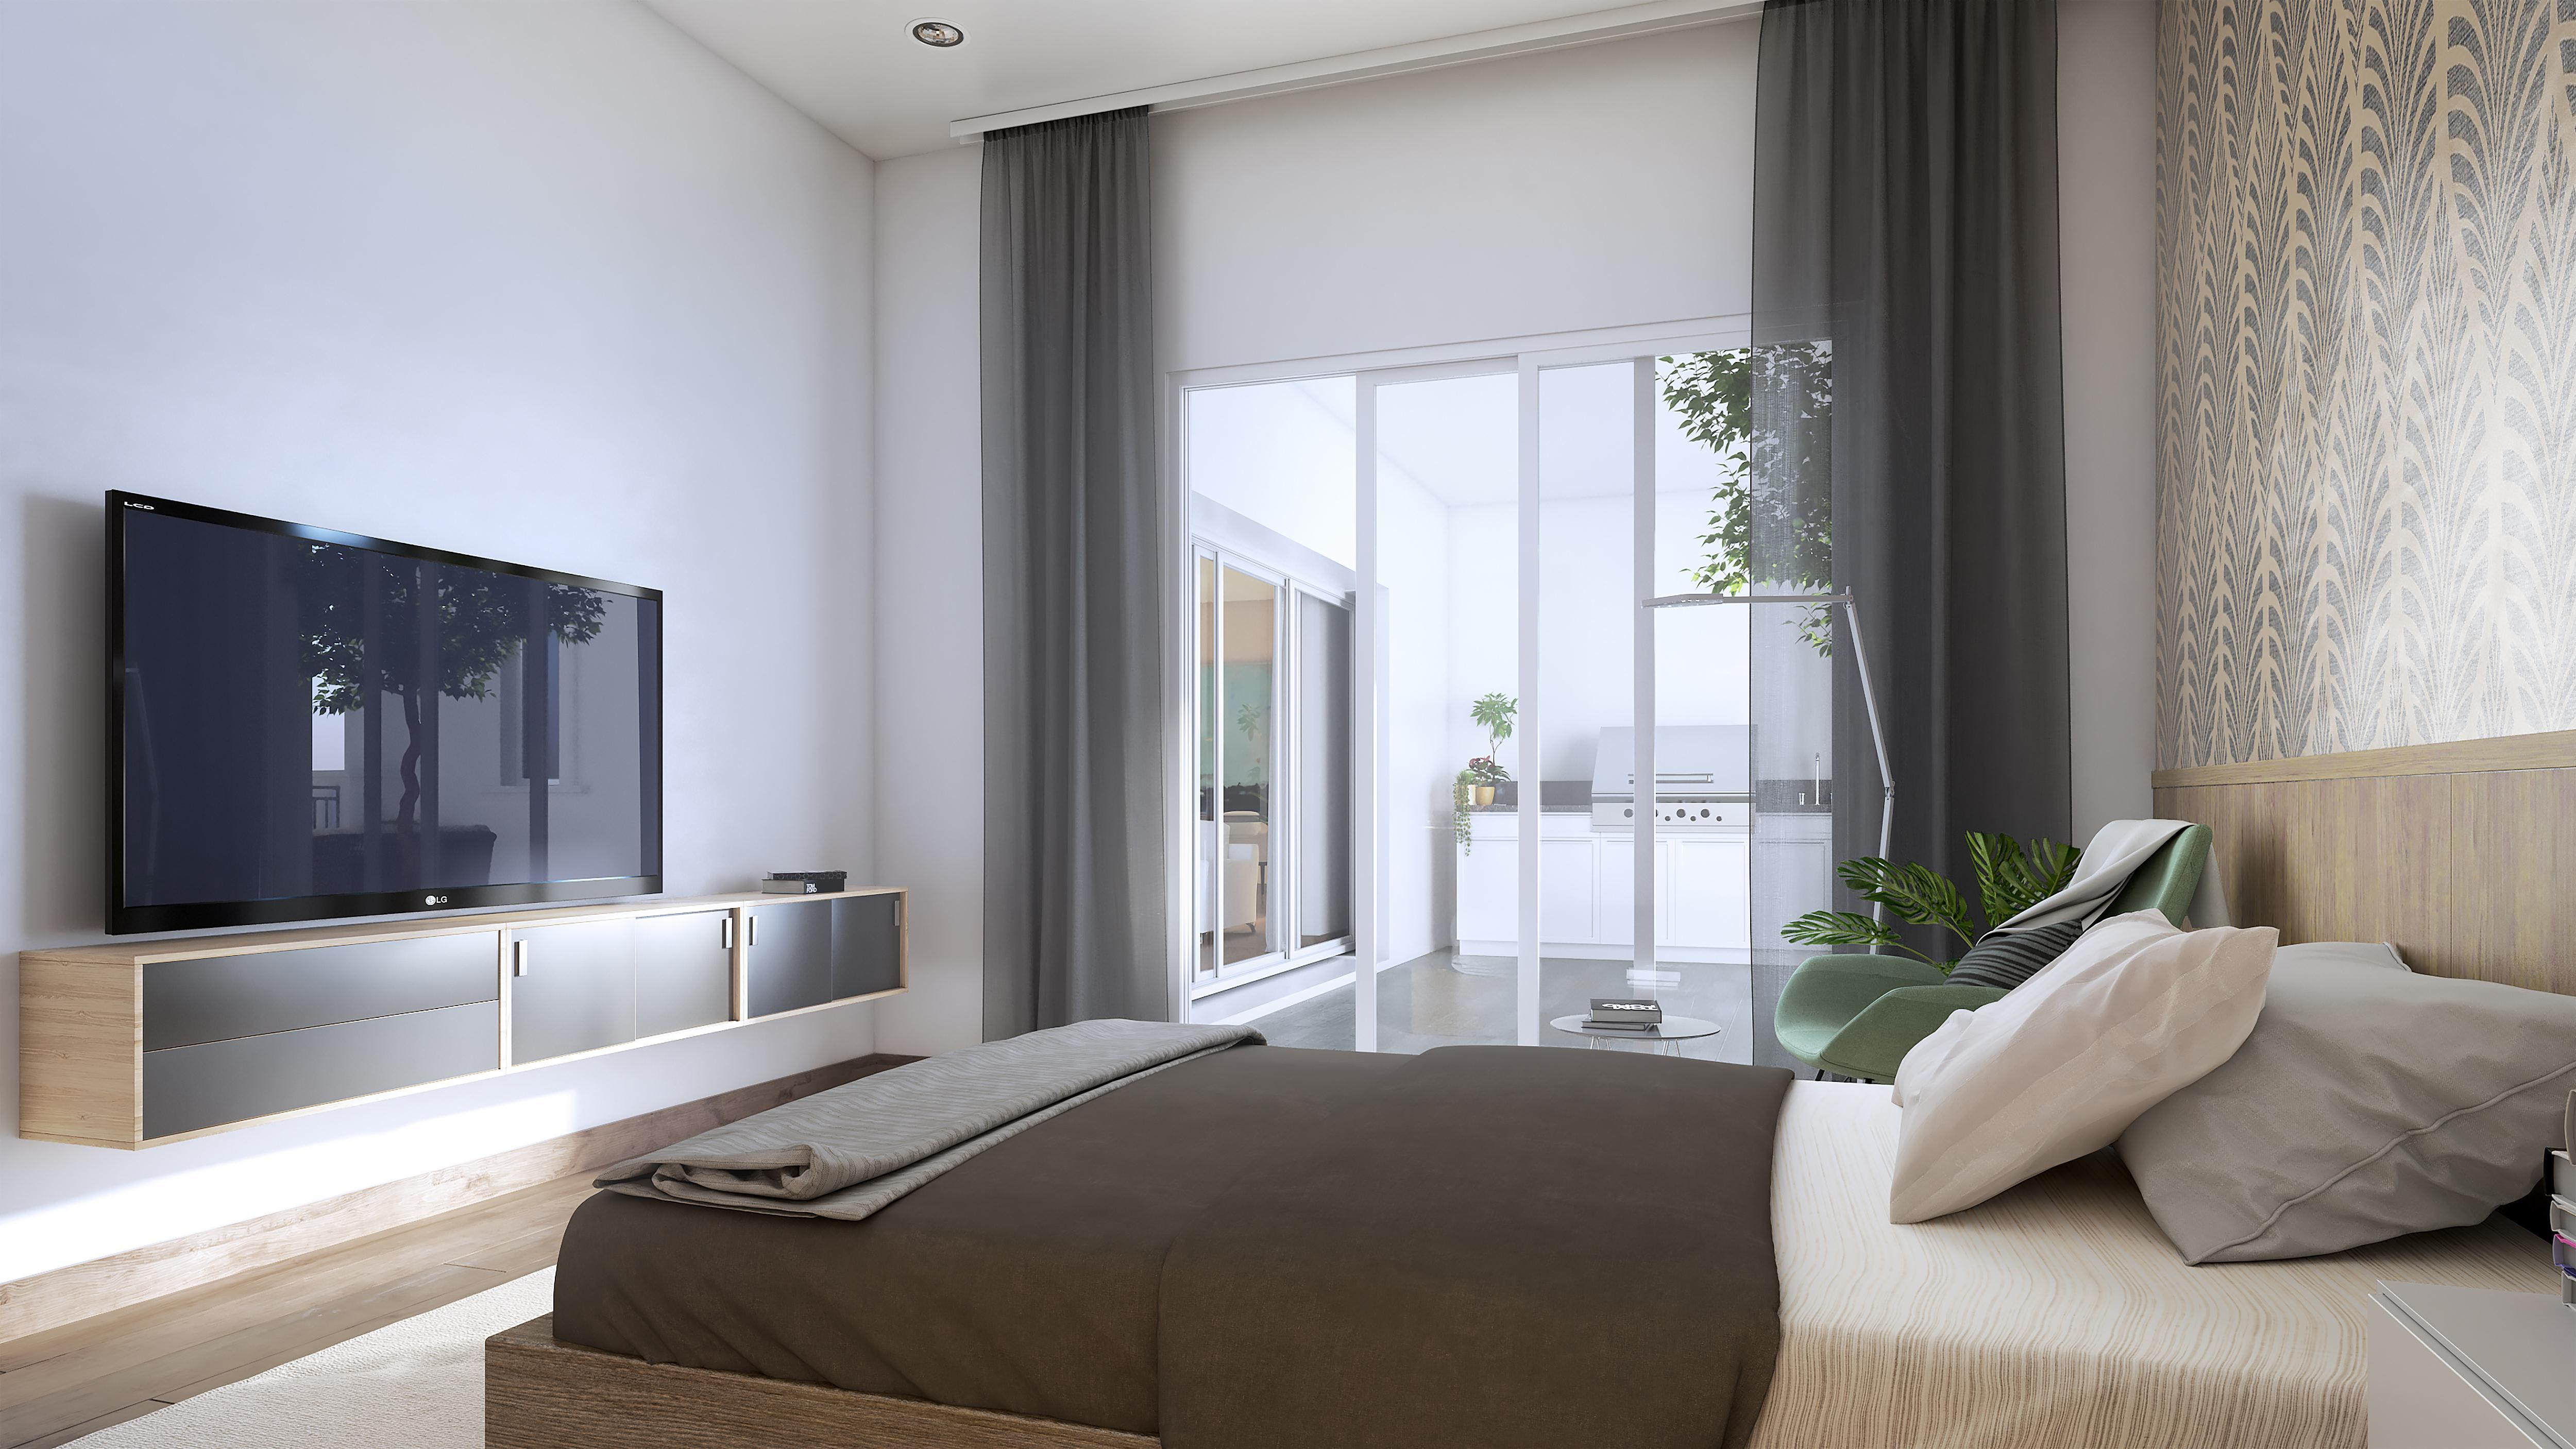 Bedroom featured in the Residence 1 By McKellar McGowan in San Diego, CA